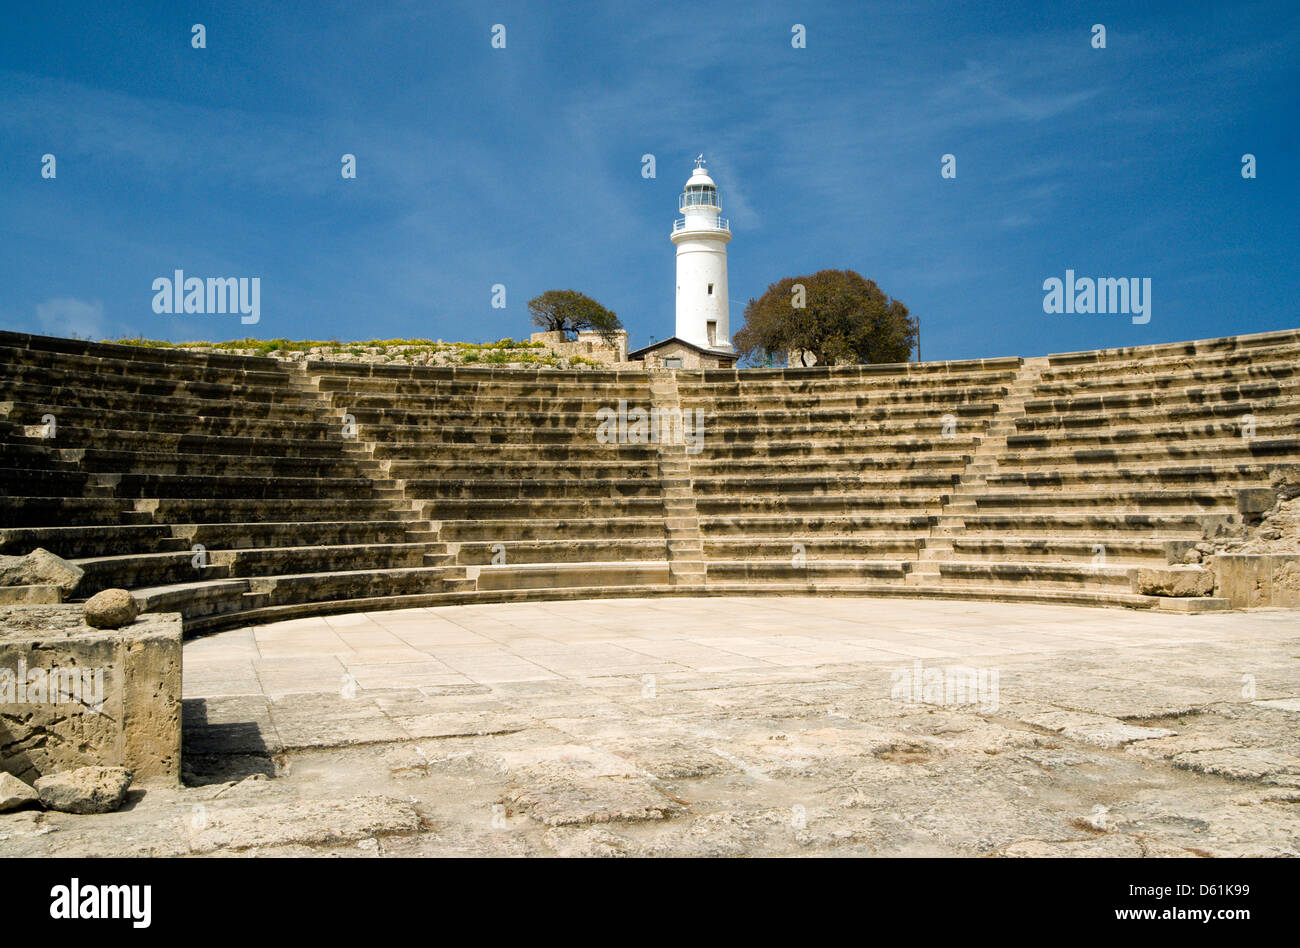 lighthouse and odeon, archaeological park, paphos, cyprus. Stock Photo